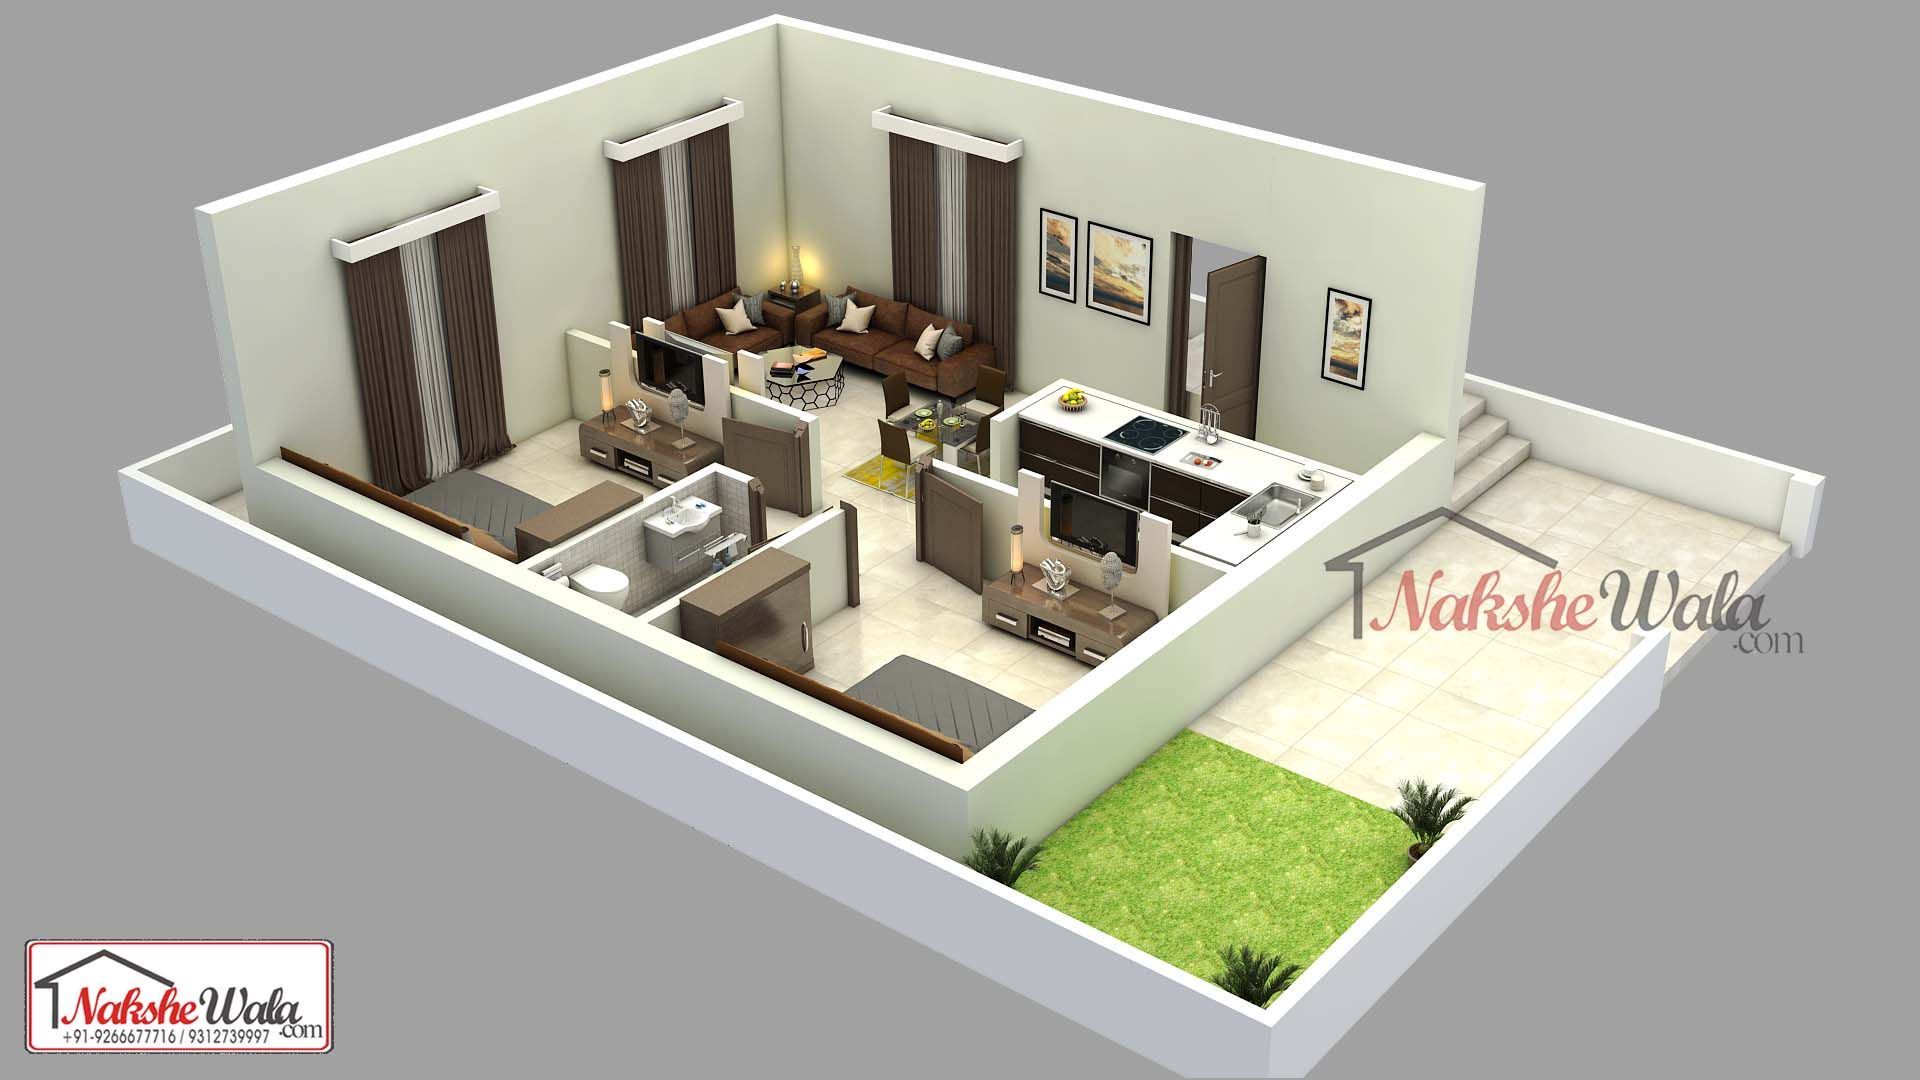 Latest 3d Floor Plan Layout With Furniture Placement Floor Plan Design House Floor Plans Indian Home Design